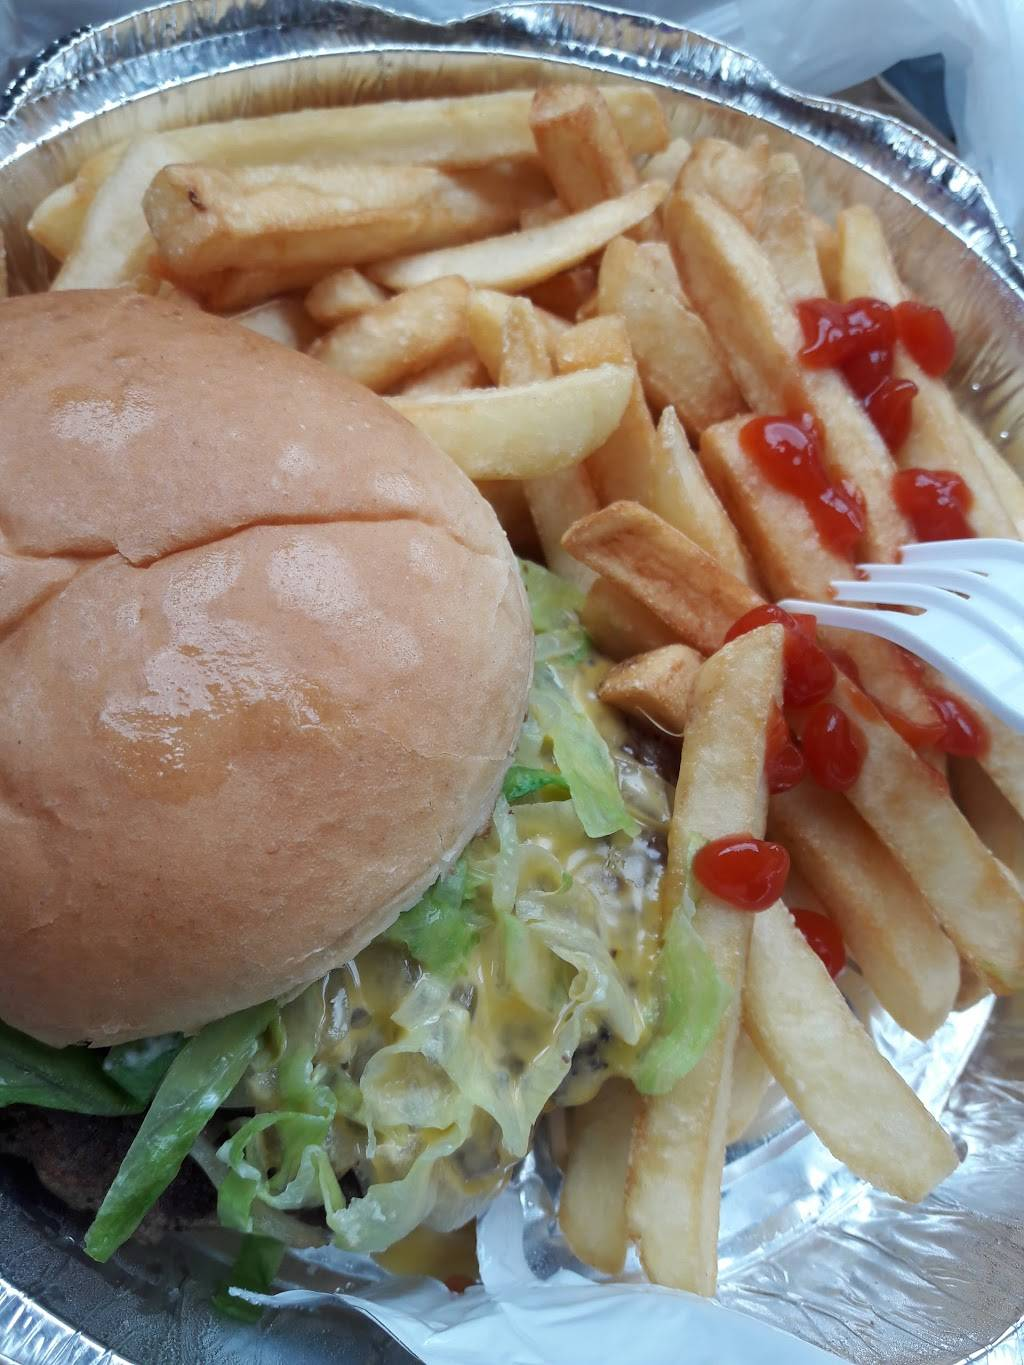 Jimbos Hamburger | meal takeaway | 515 E Tremont Ave, Bronx, NY 10457, USA | 3475901287 OR +1 347-590-1287